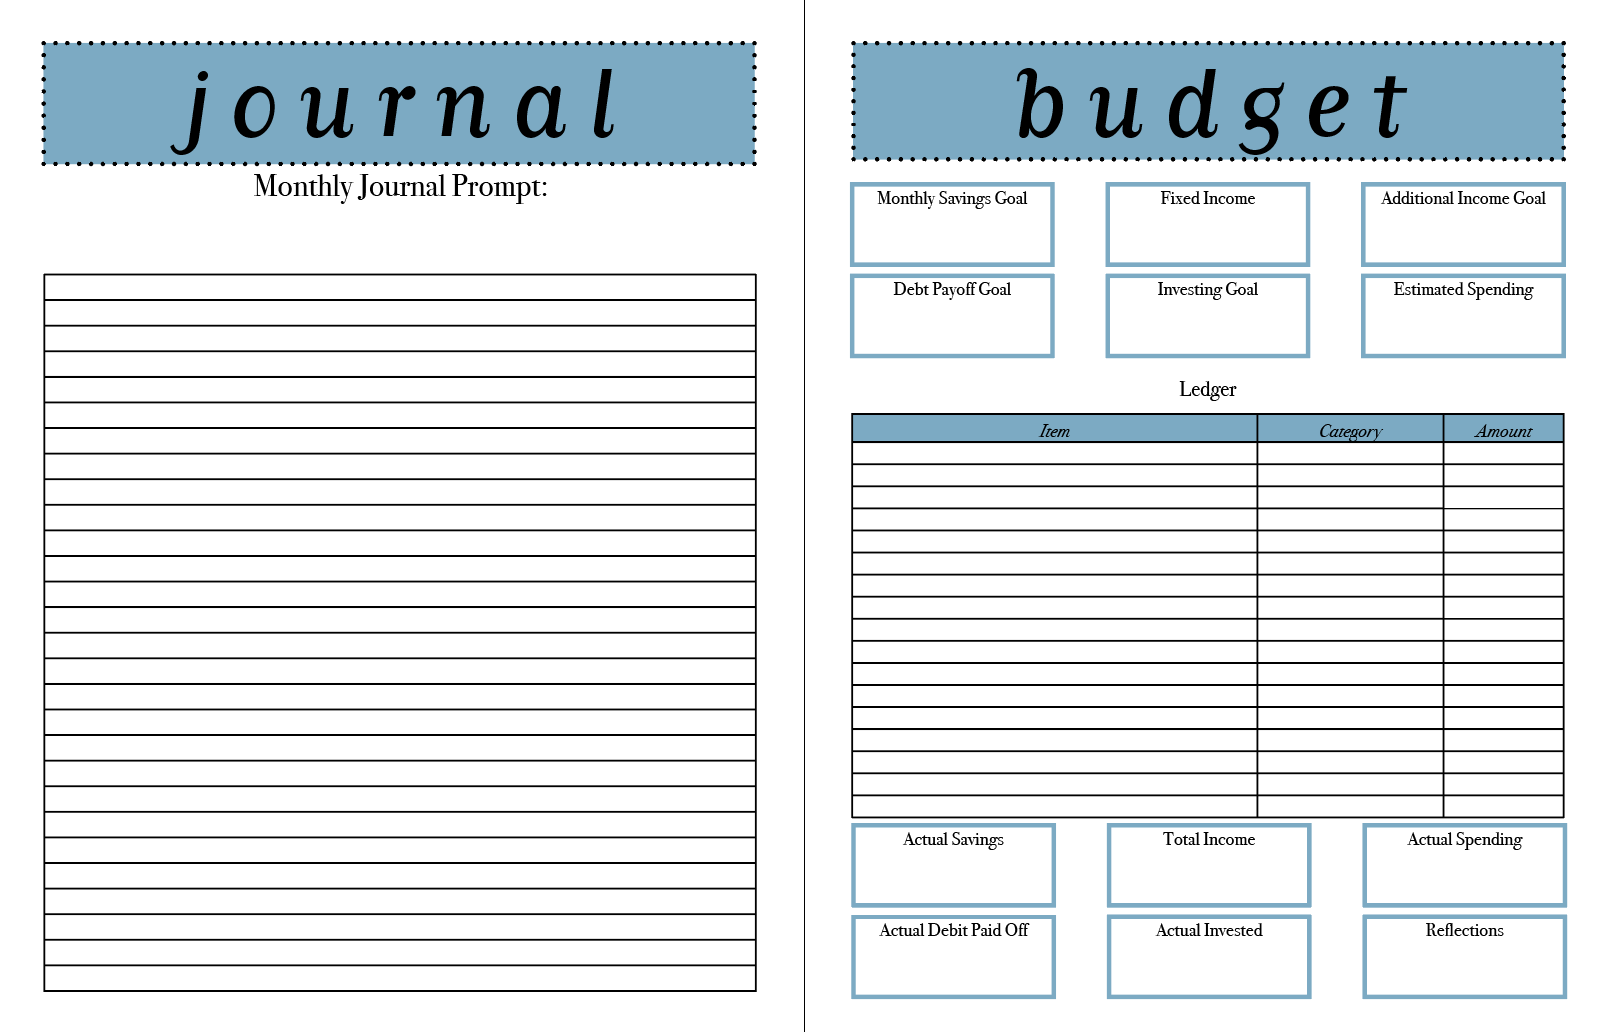 Follow @PUSHPaper_Co for monthly journal prompt!  Track your budget goals and record your transactions.